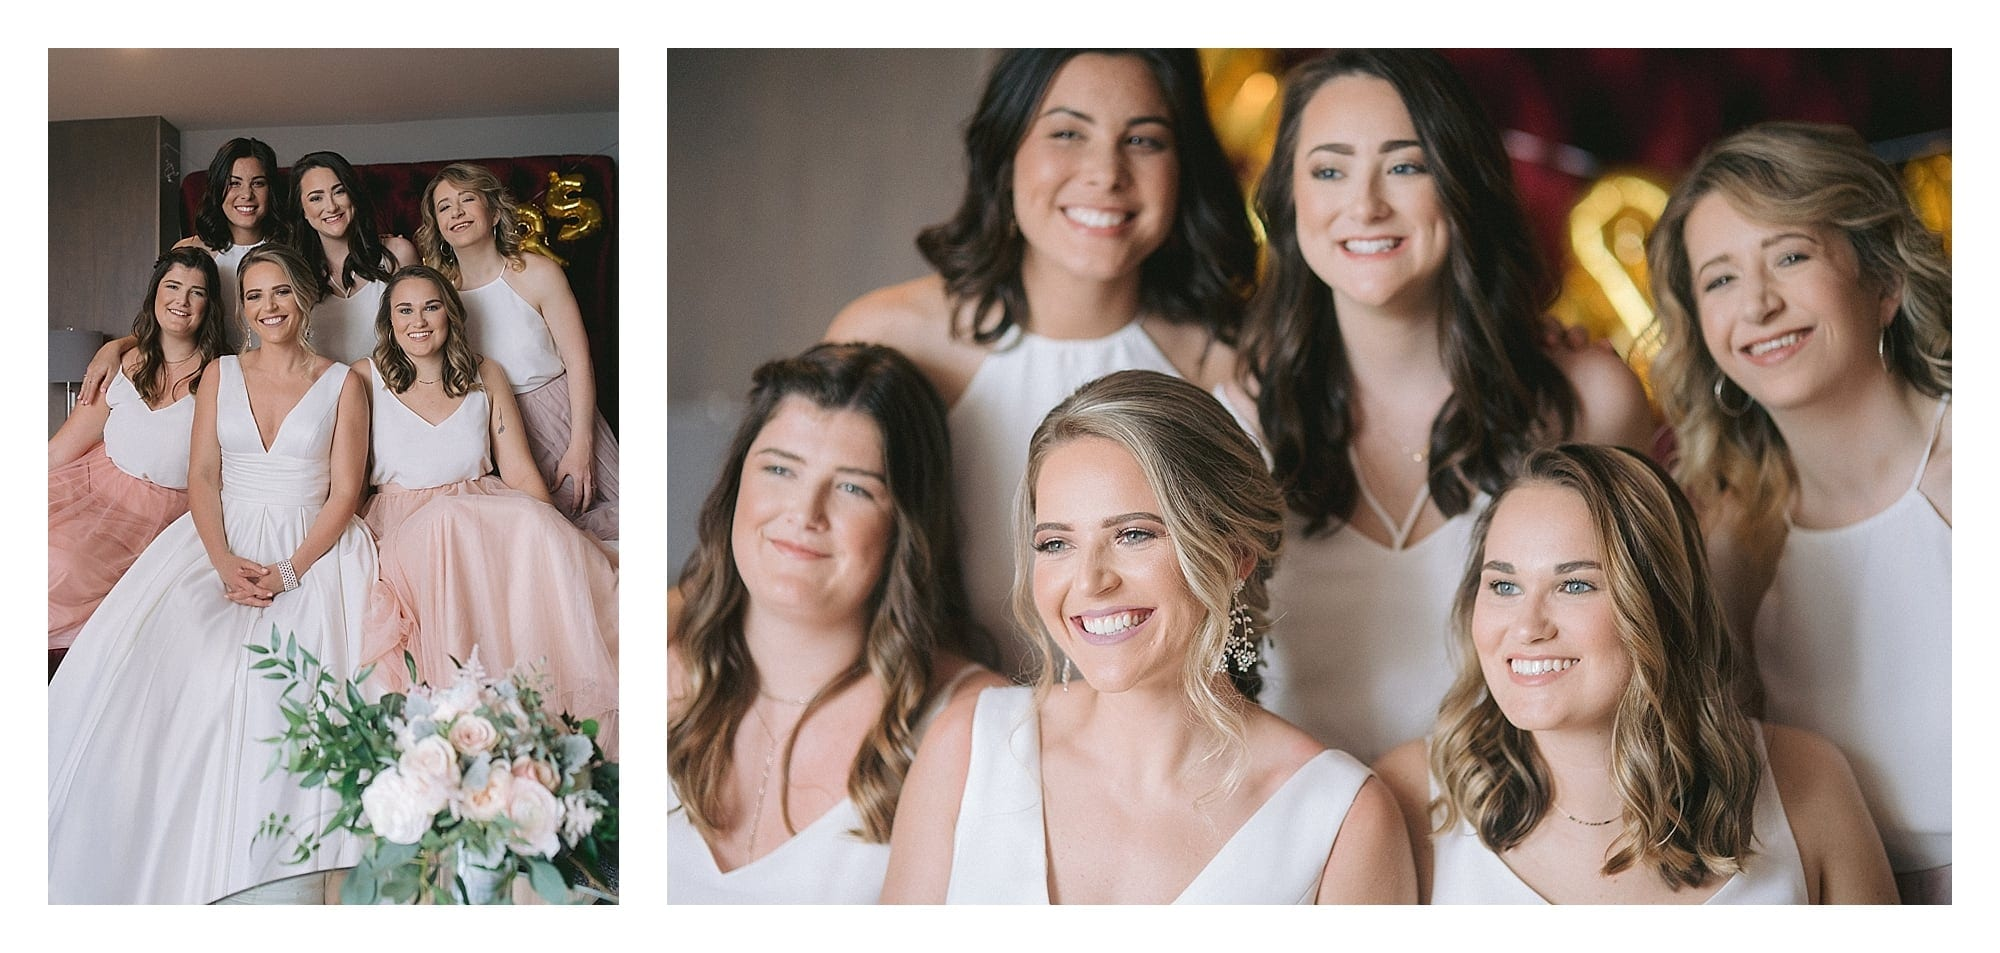 Bride and her bridesmaids smiling at camera sitting on couch